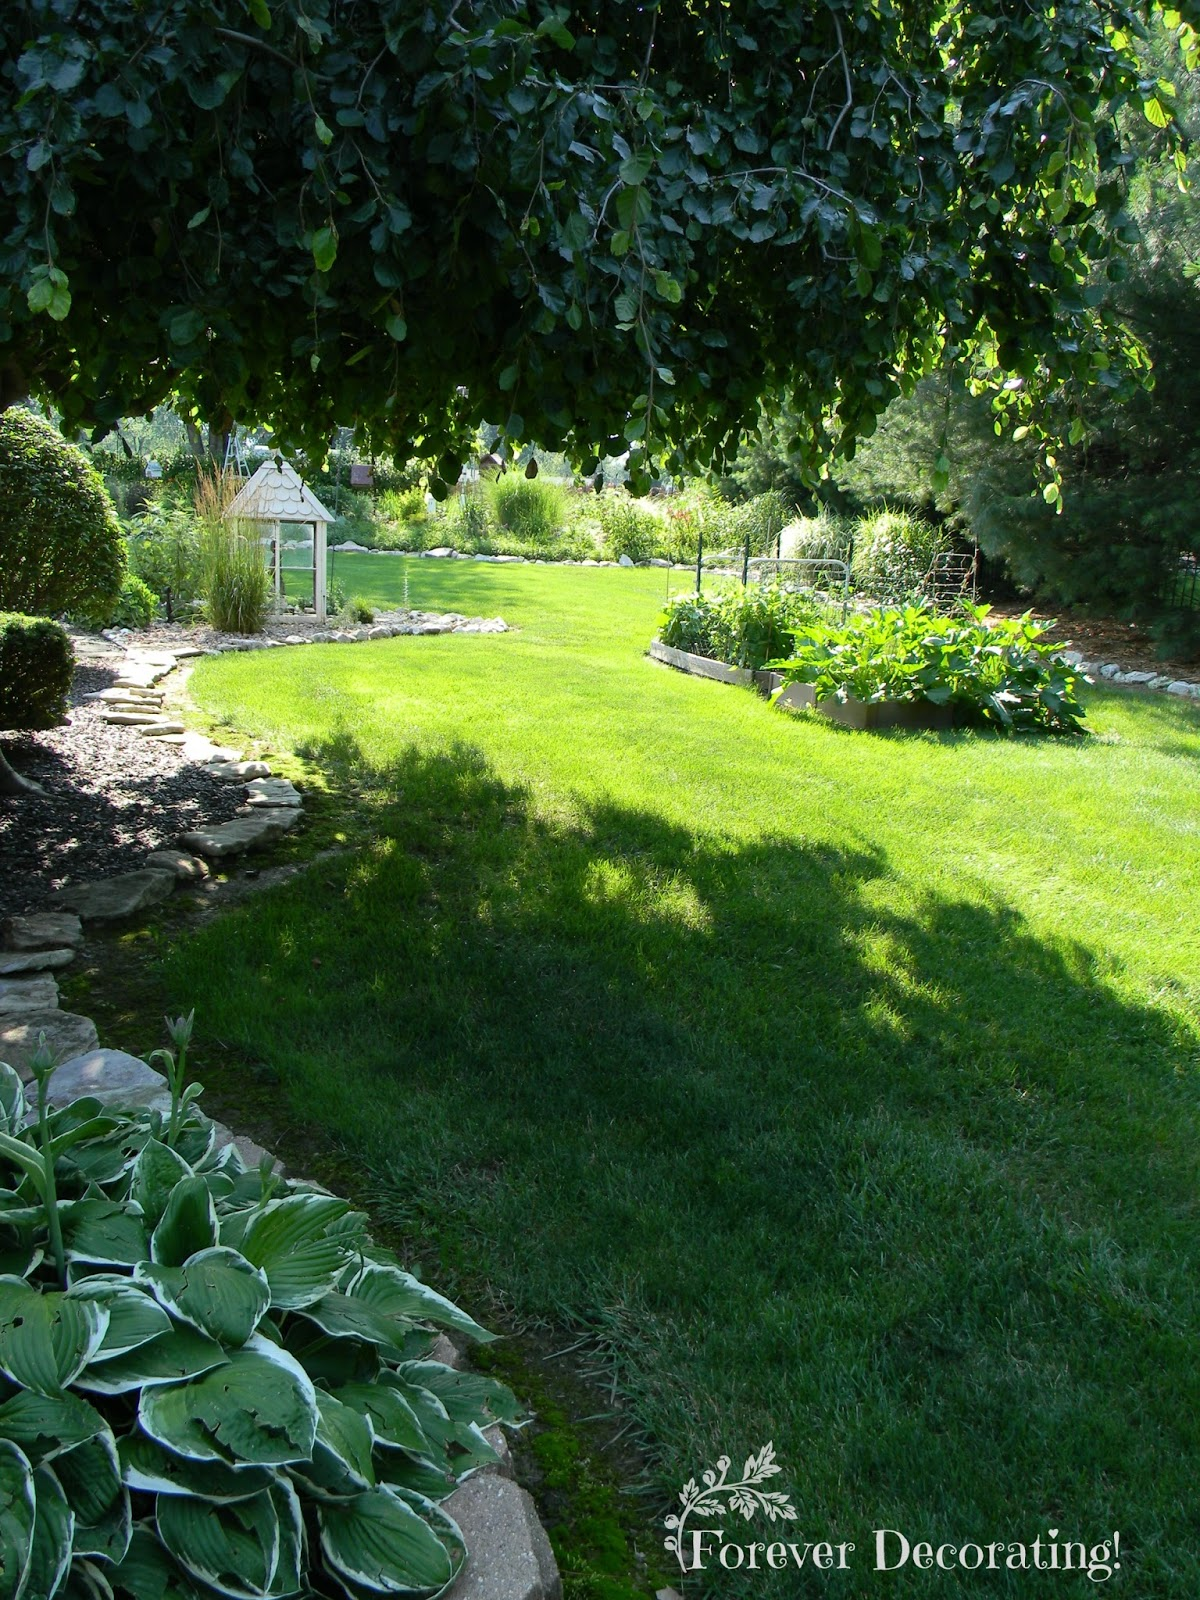 Forever Decorating!: My House & Gardens ~ Part I